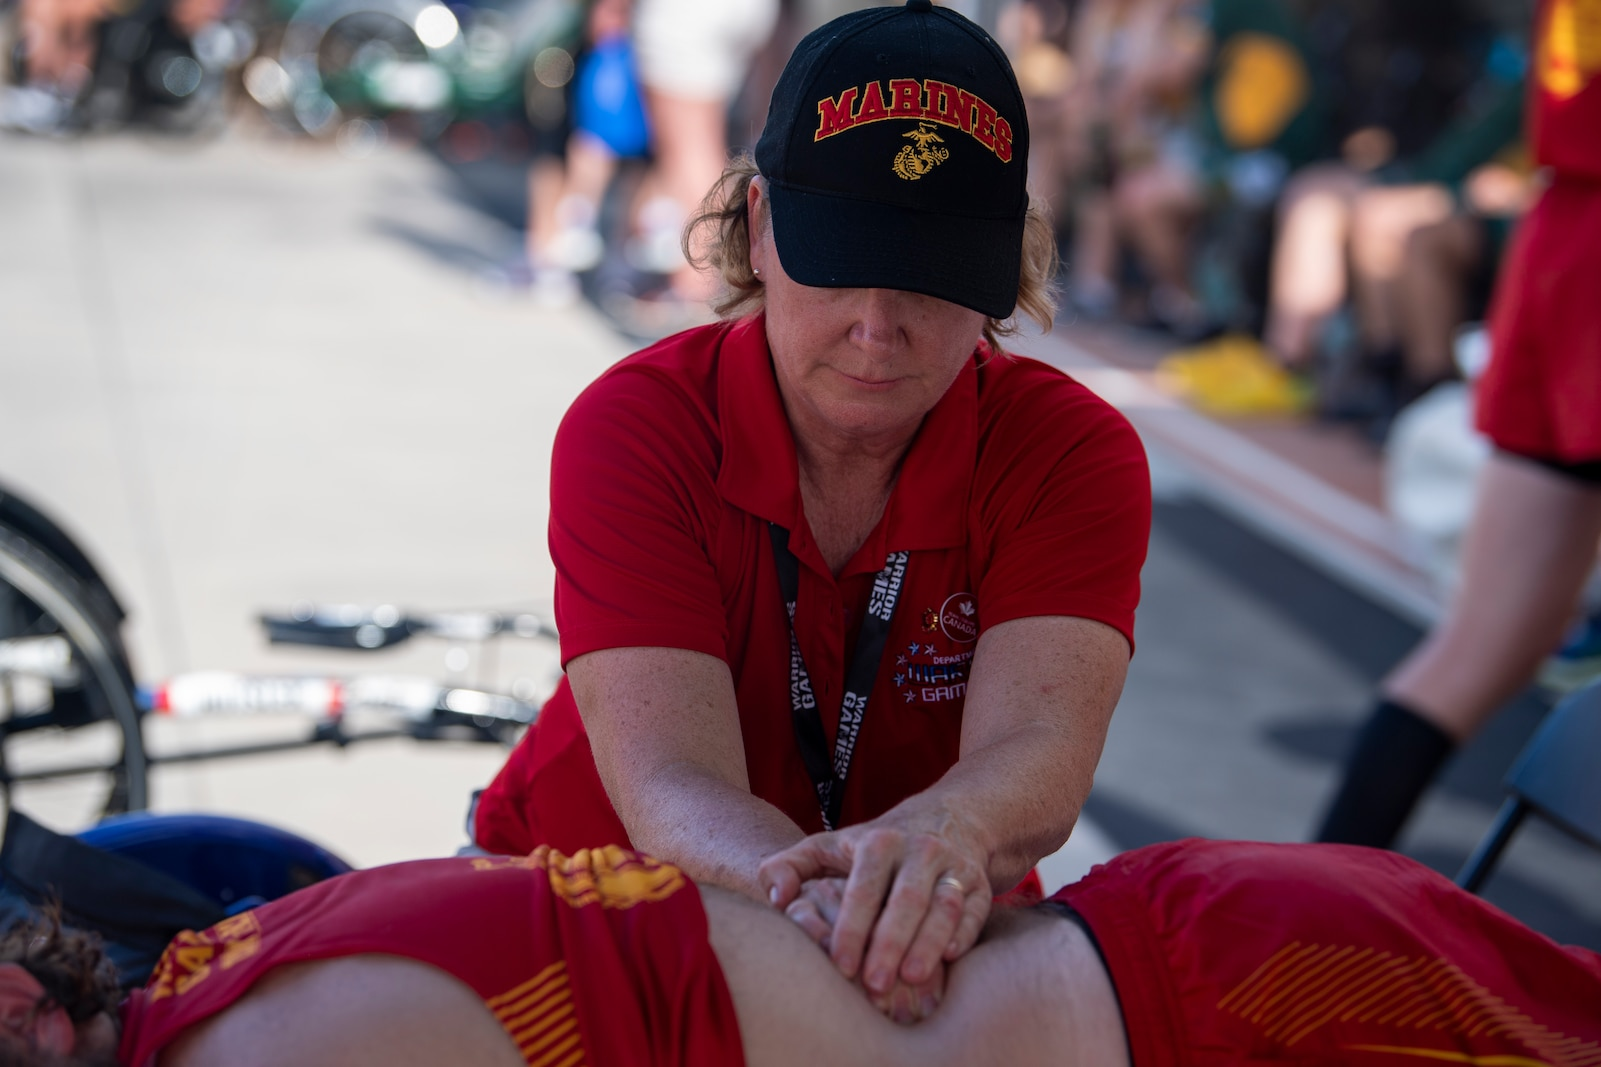 A team Marine Corps  medical staff member provides therapy to an athlete during the 2019 DoD Warrior Games. The Warrior Games showcase the resilient spirit of today's wounded, ill or injured service members from all branches of the military and provide a venue for recovering service members and veterans to demonstrate triumph over significant physical or invisible wounds and injuries.